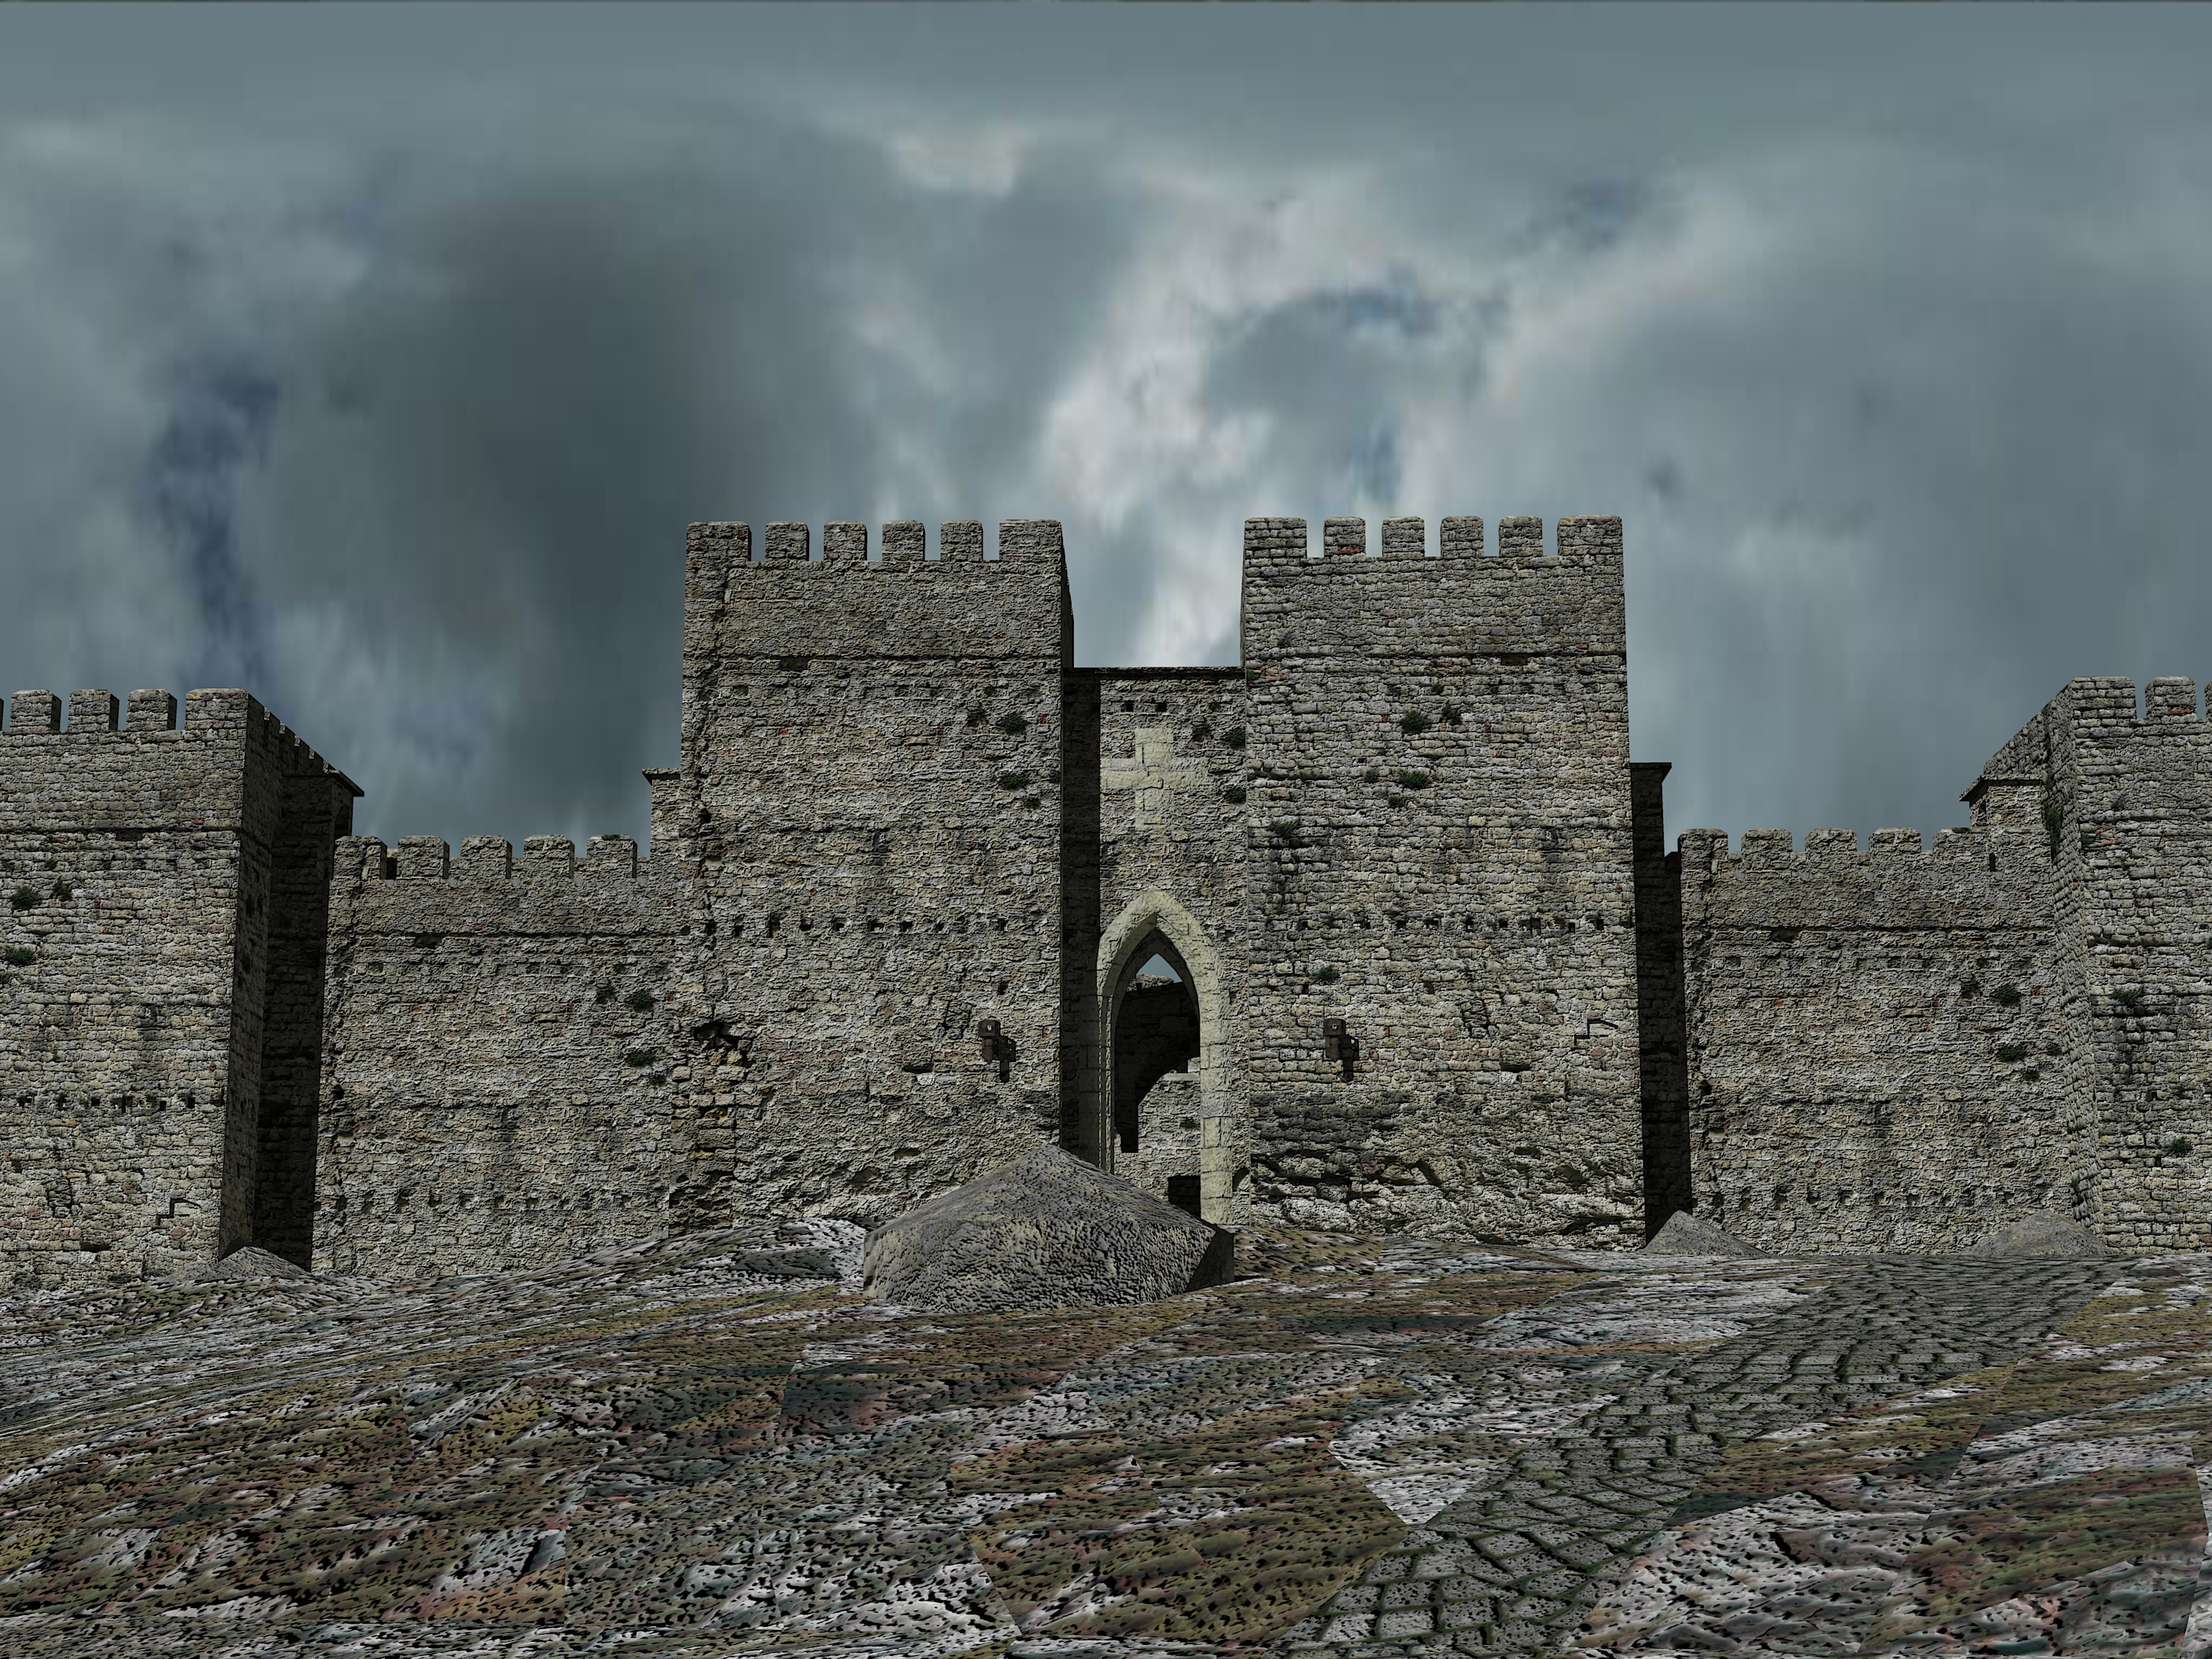 Crusader castle, approach by LordGood on DeviantArt